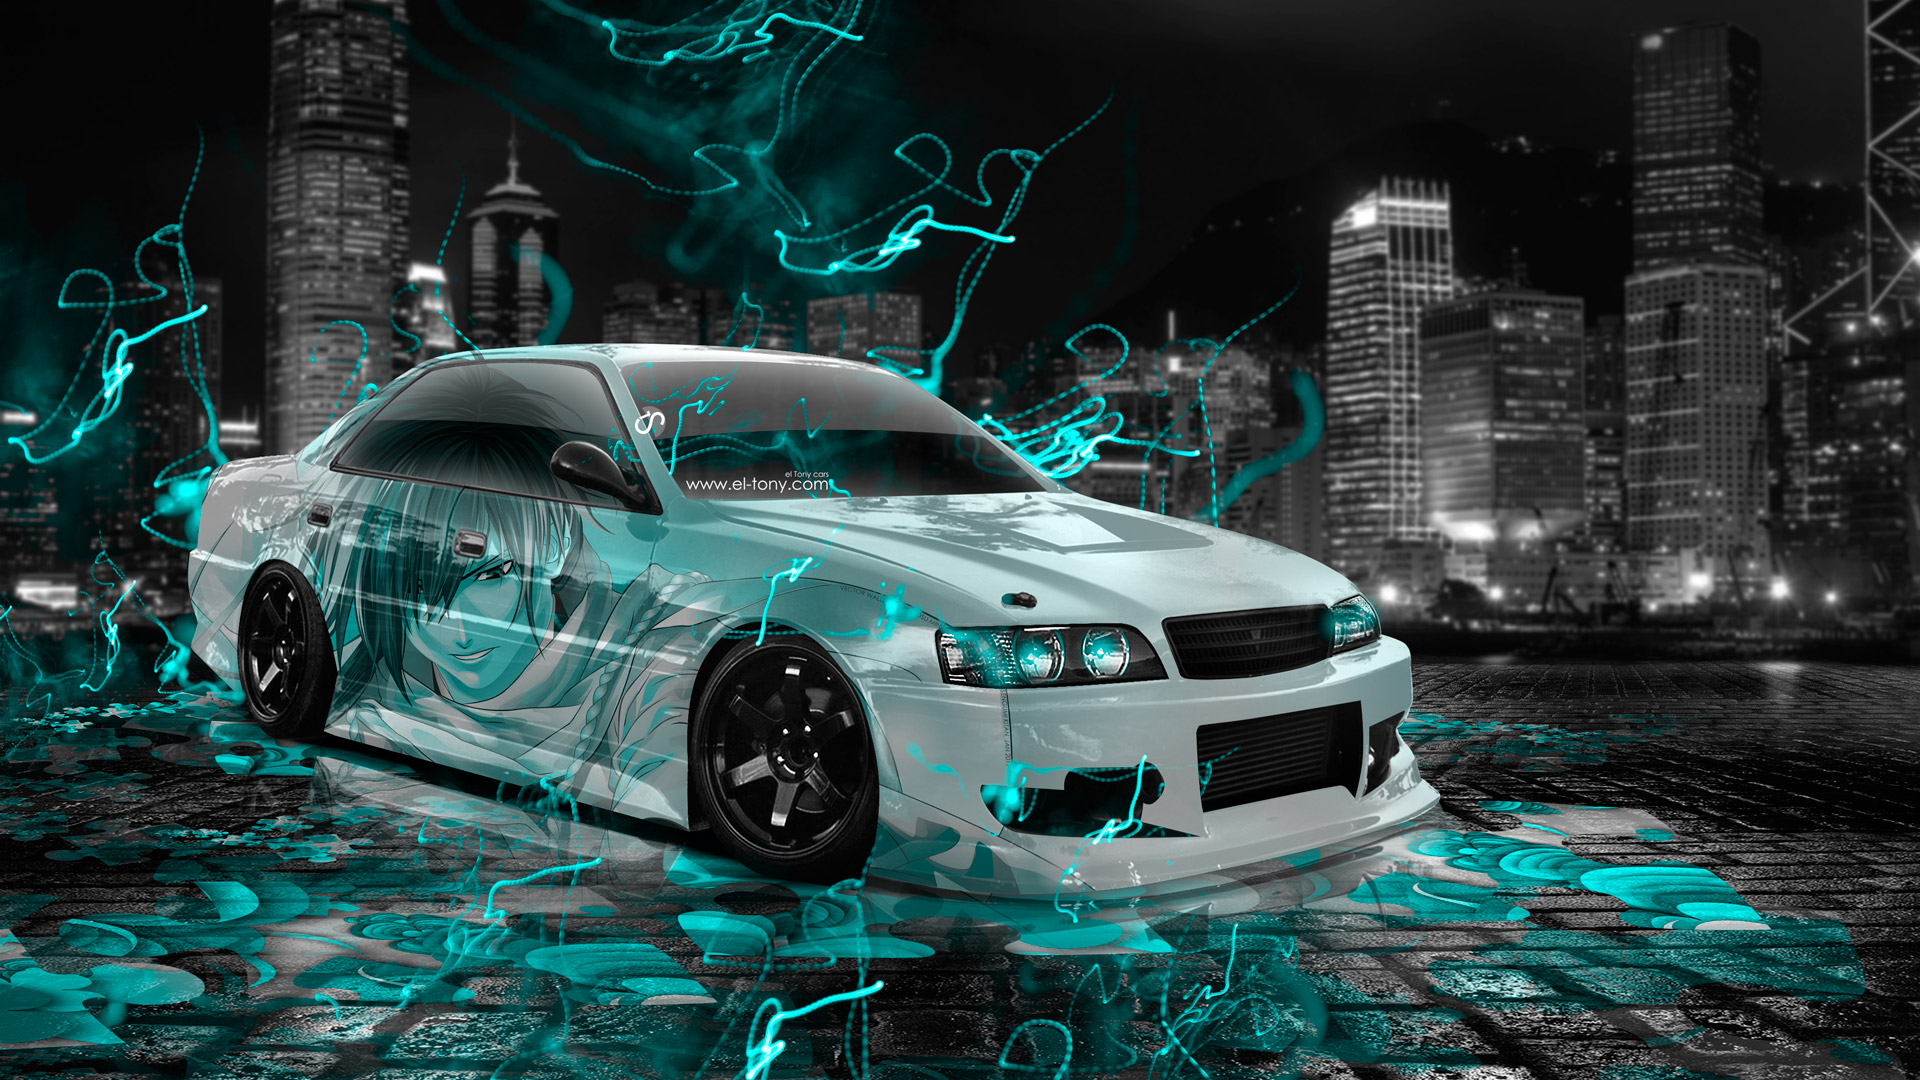 Good Toyota Chaser JZX100 JDM Tuning Anime Boy Aerography .